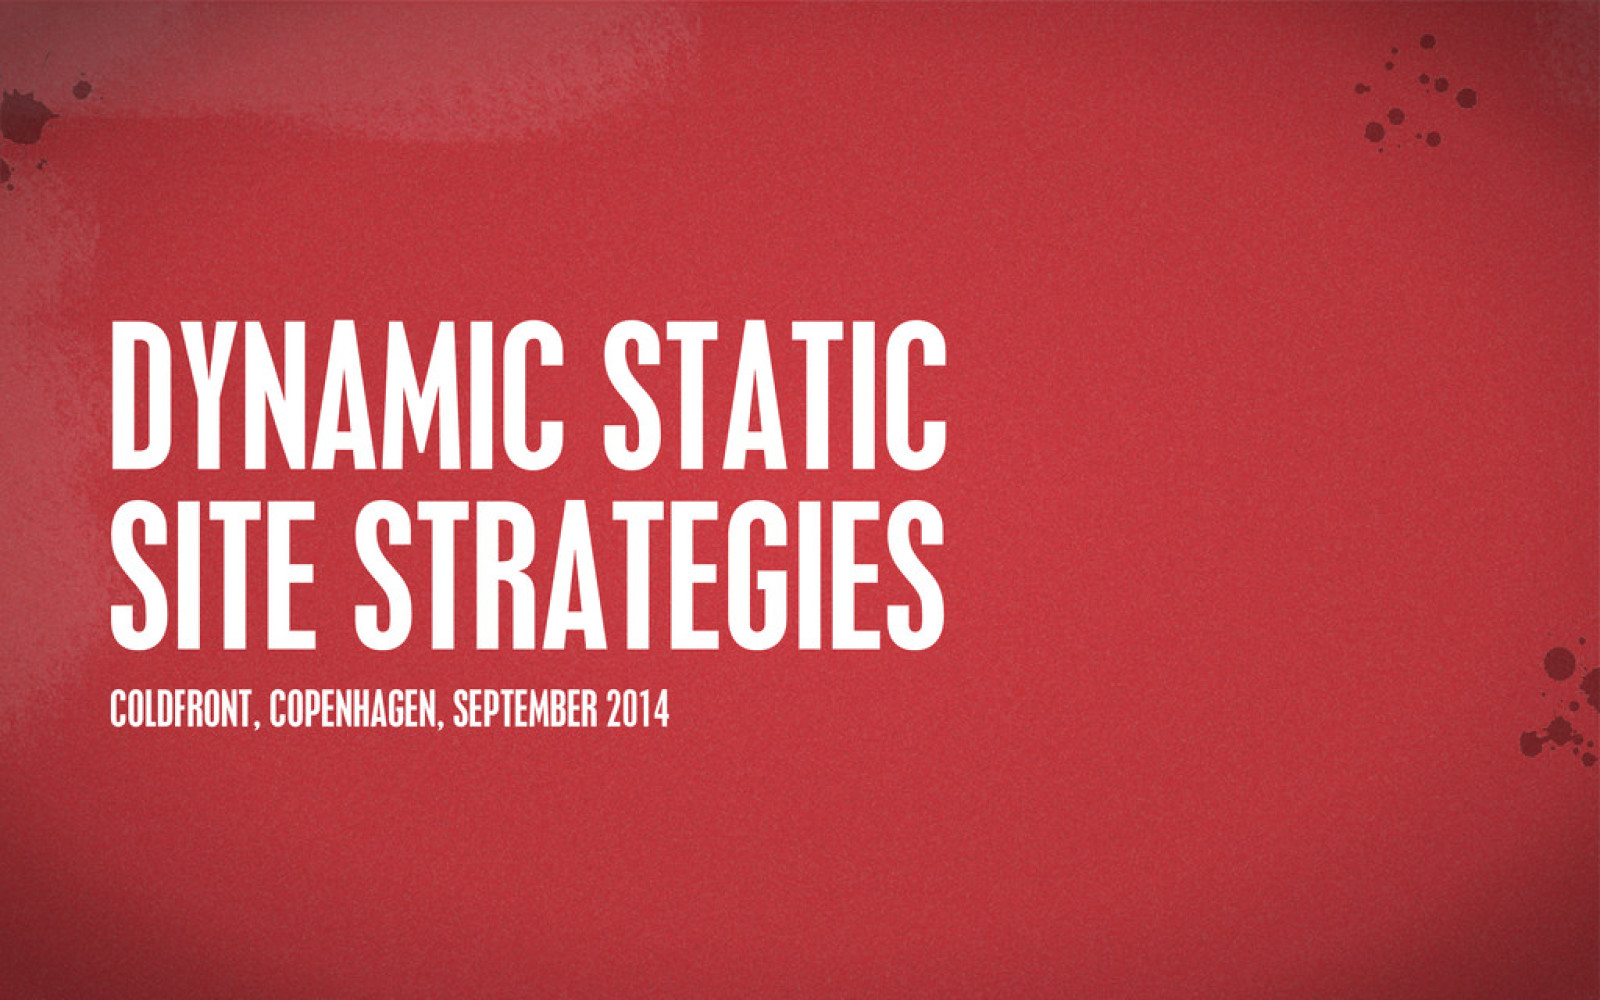 Dynamic Static Site Strategies